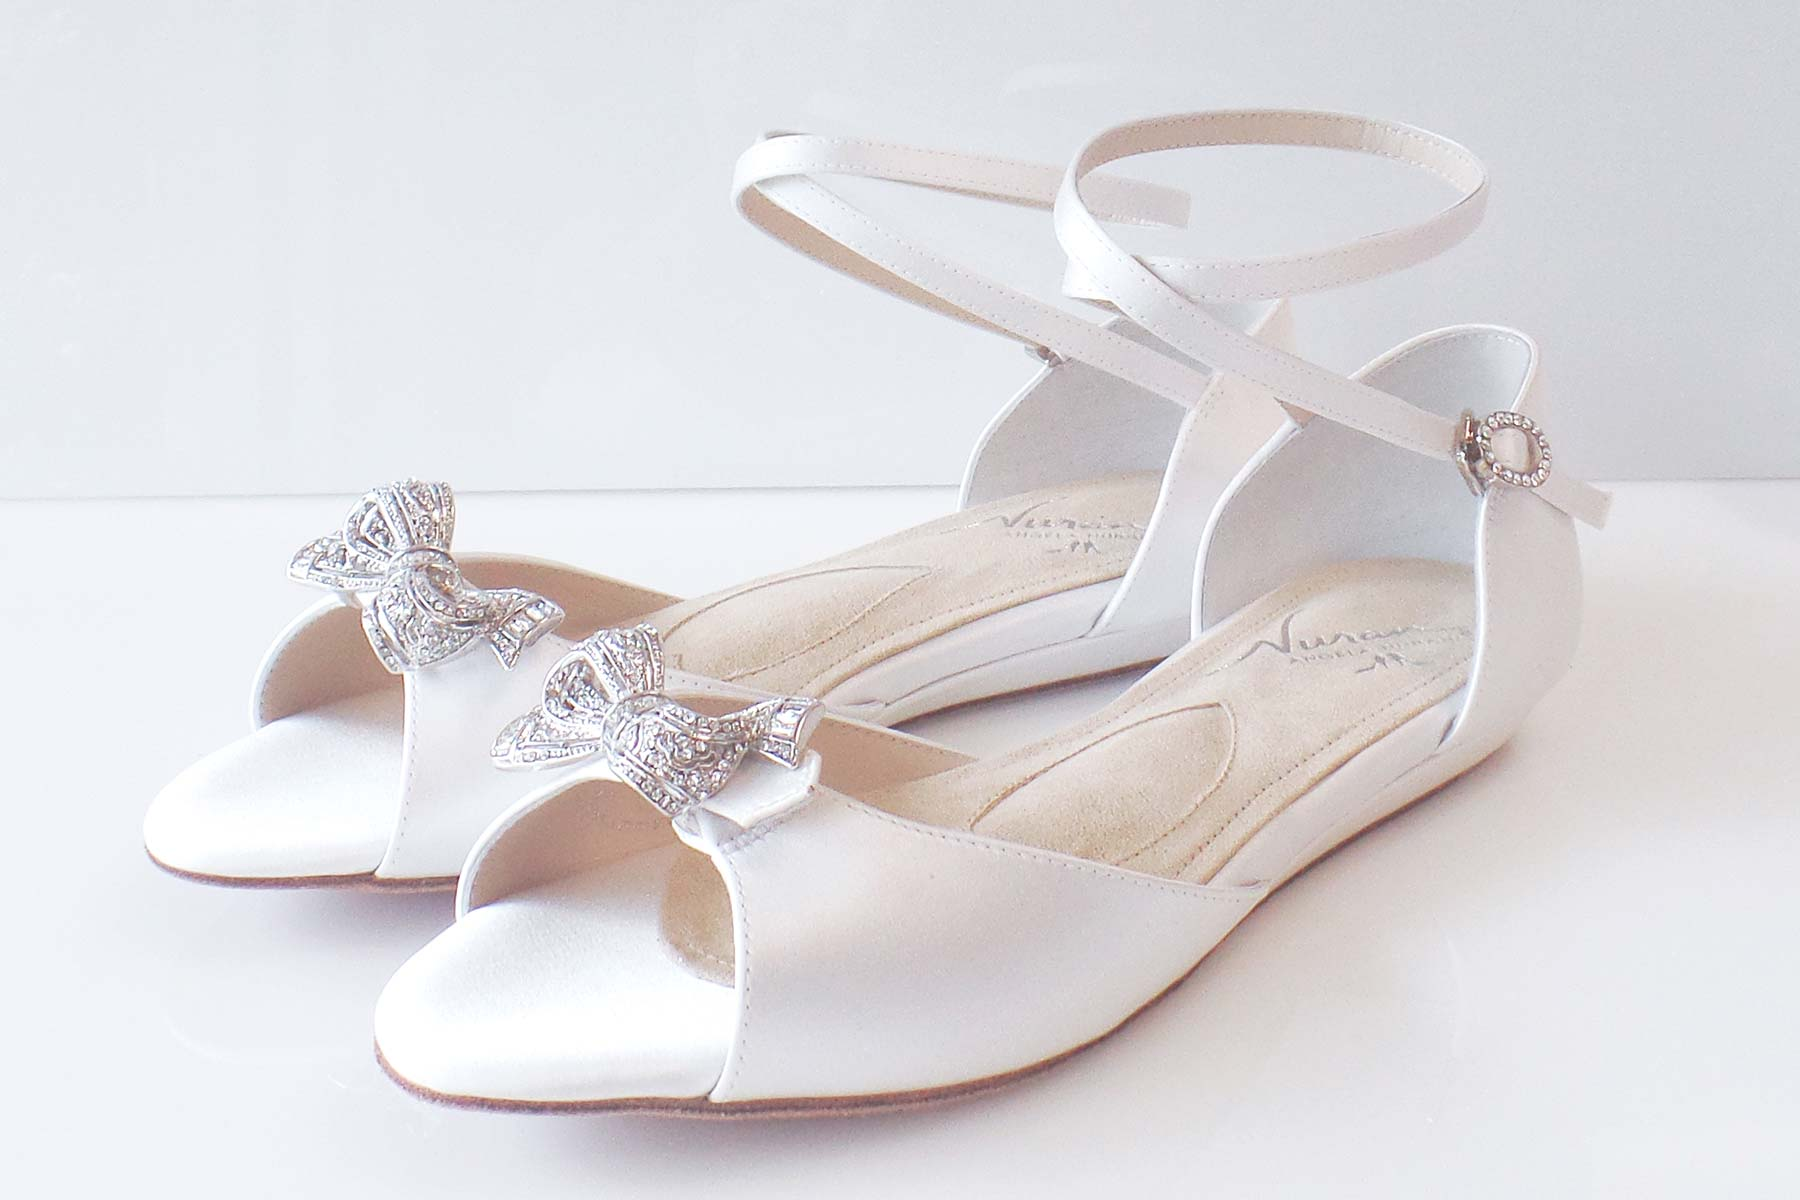 ballet inspired, wedding flats, shoes